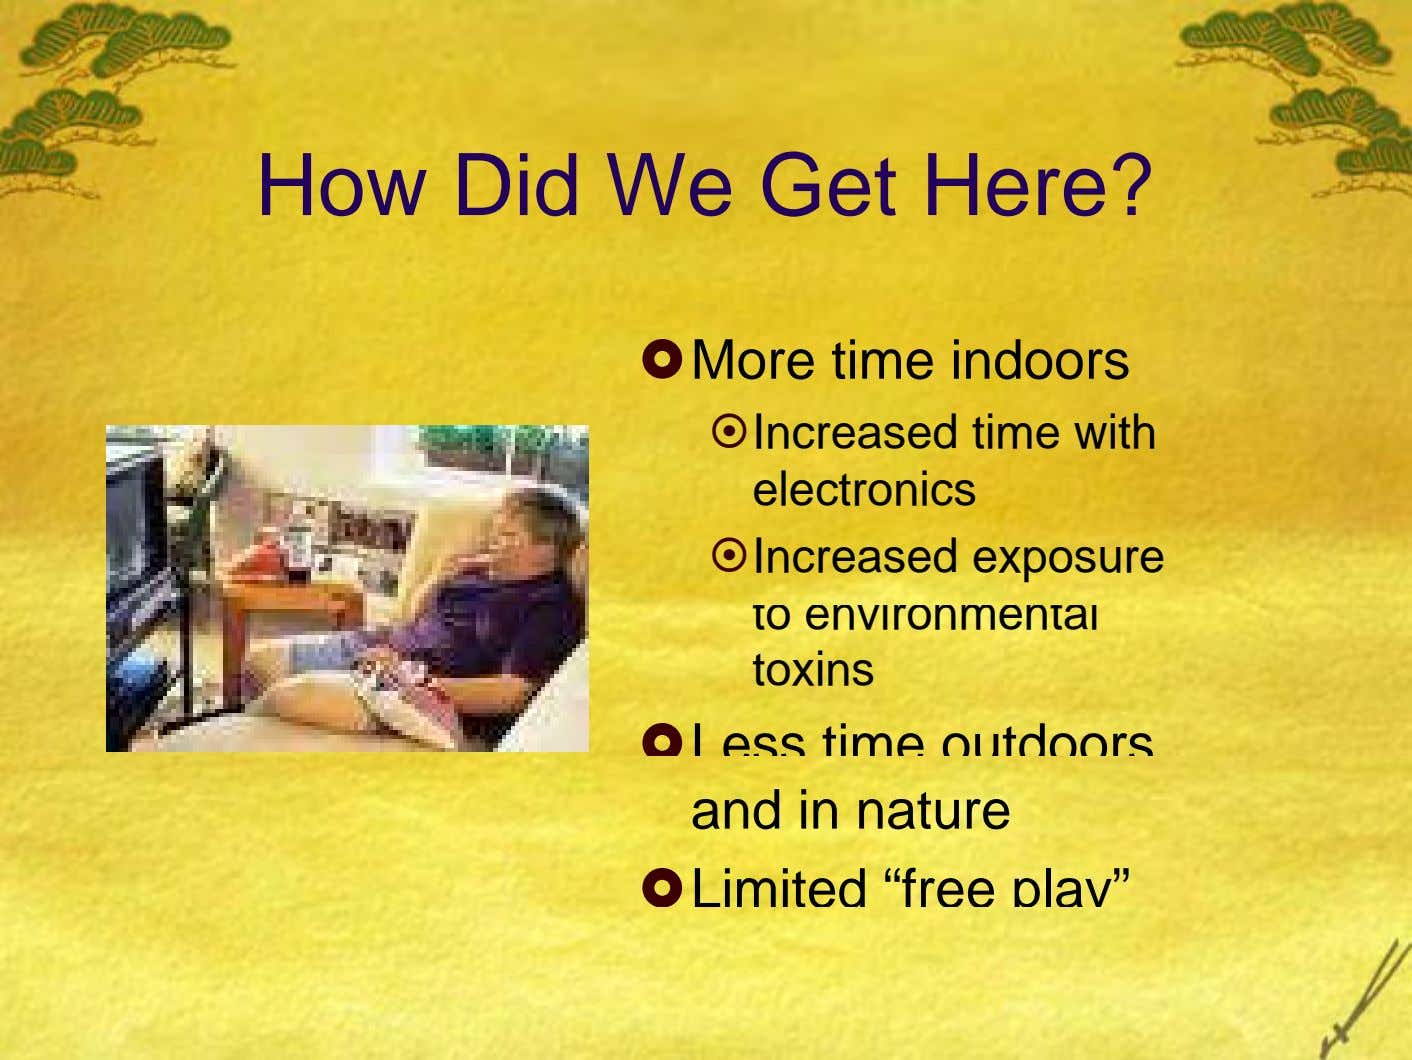 How Did We Get Here? More time indoors Increased time with electronics Increased exposure to environmental